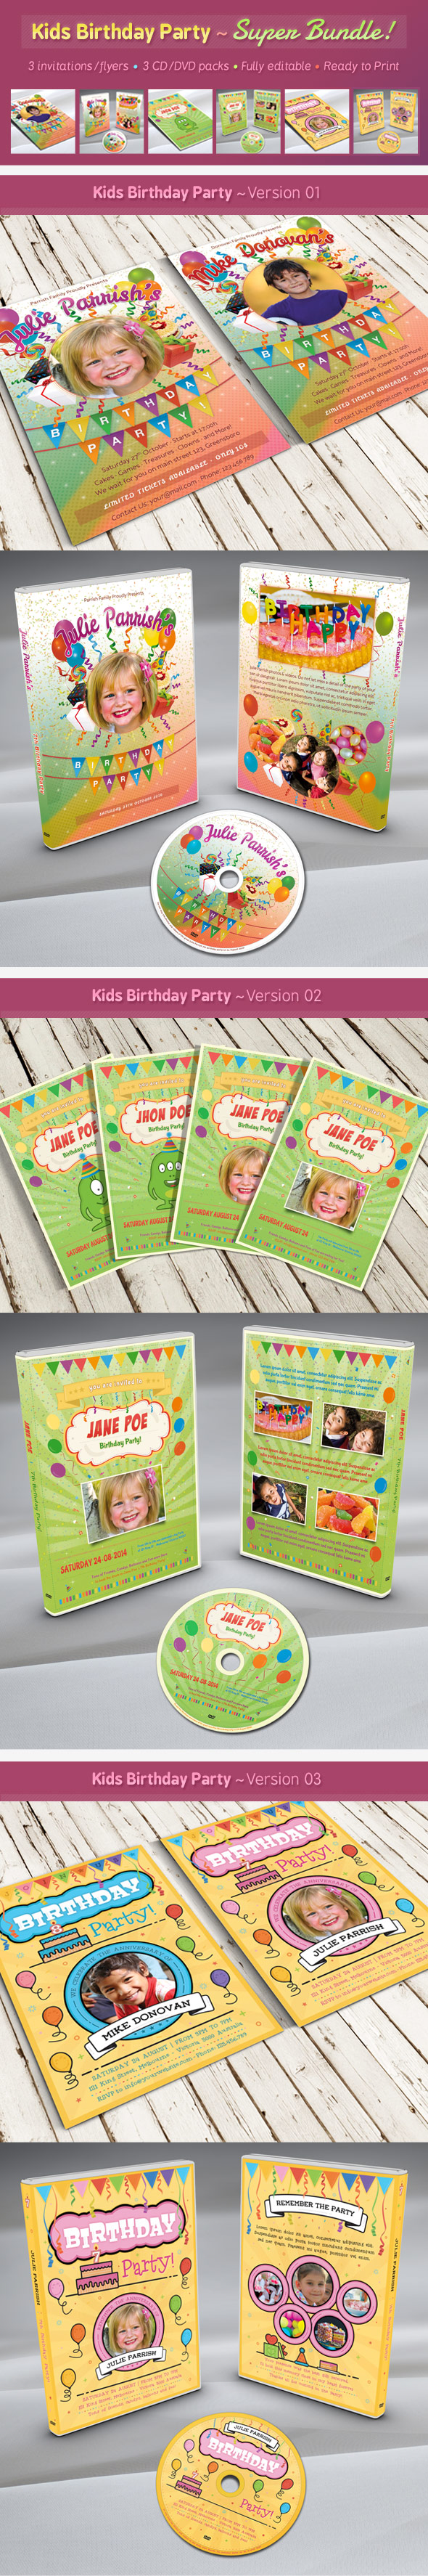 image-preview-kids-birthday-party-flyers-and-dvd-covers-super-bundle